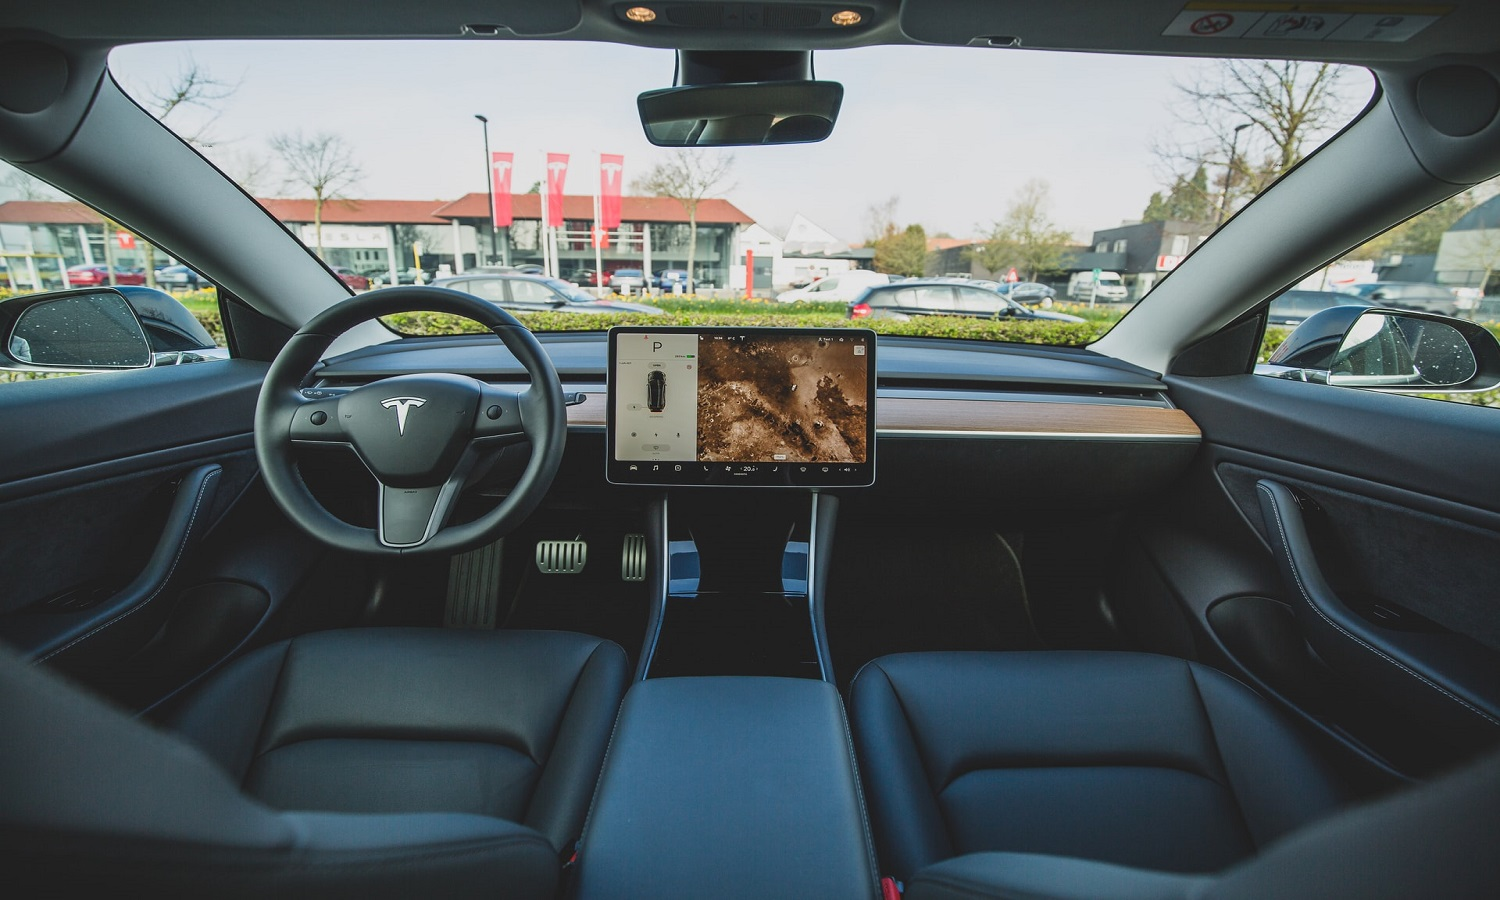 Self-Driving Car: Levels, Benefits And Constraints